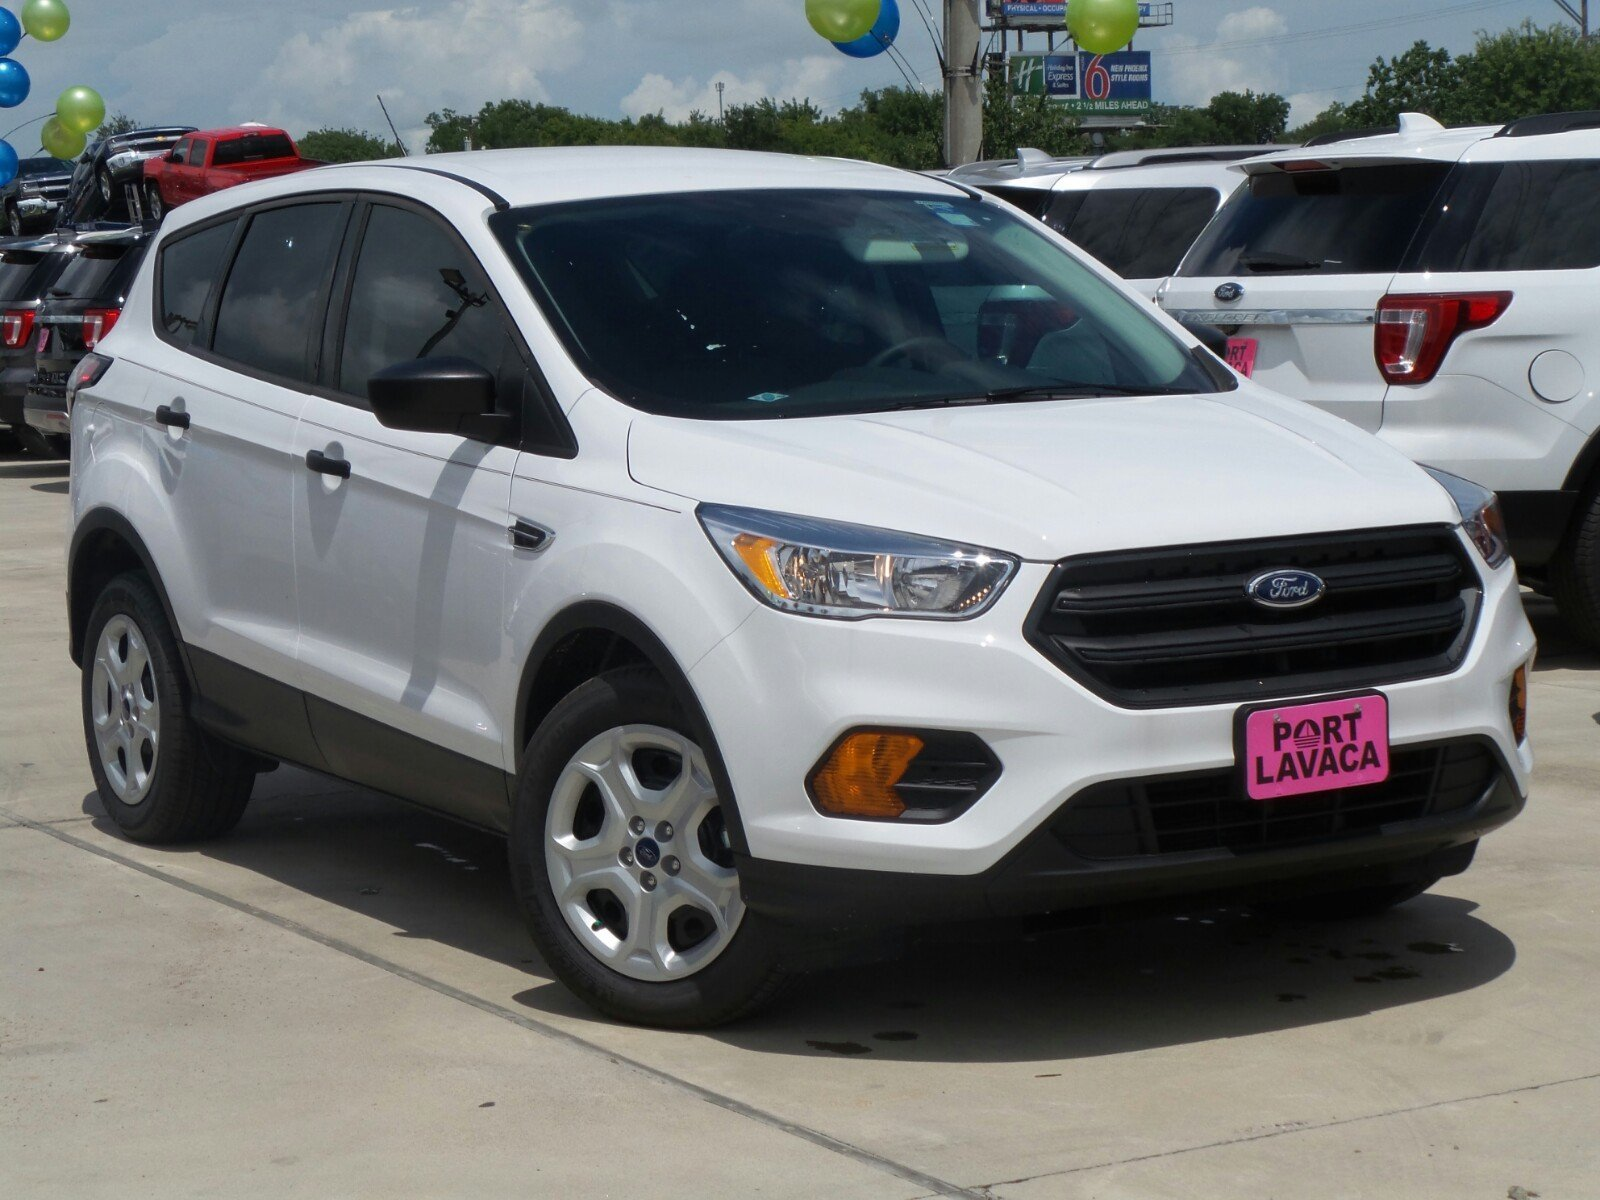 new 2018 ford escape s 4d sport utility in port lavaca ua22326 port lavaca ford. Black Bedroom Furniture Sets. Home Design Ideas